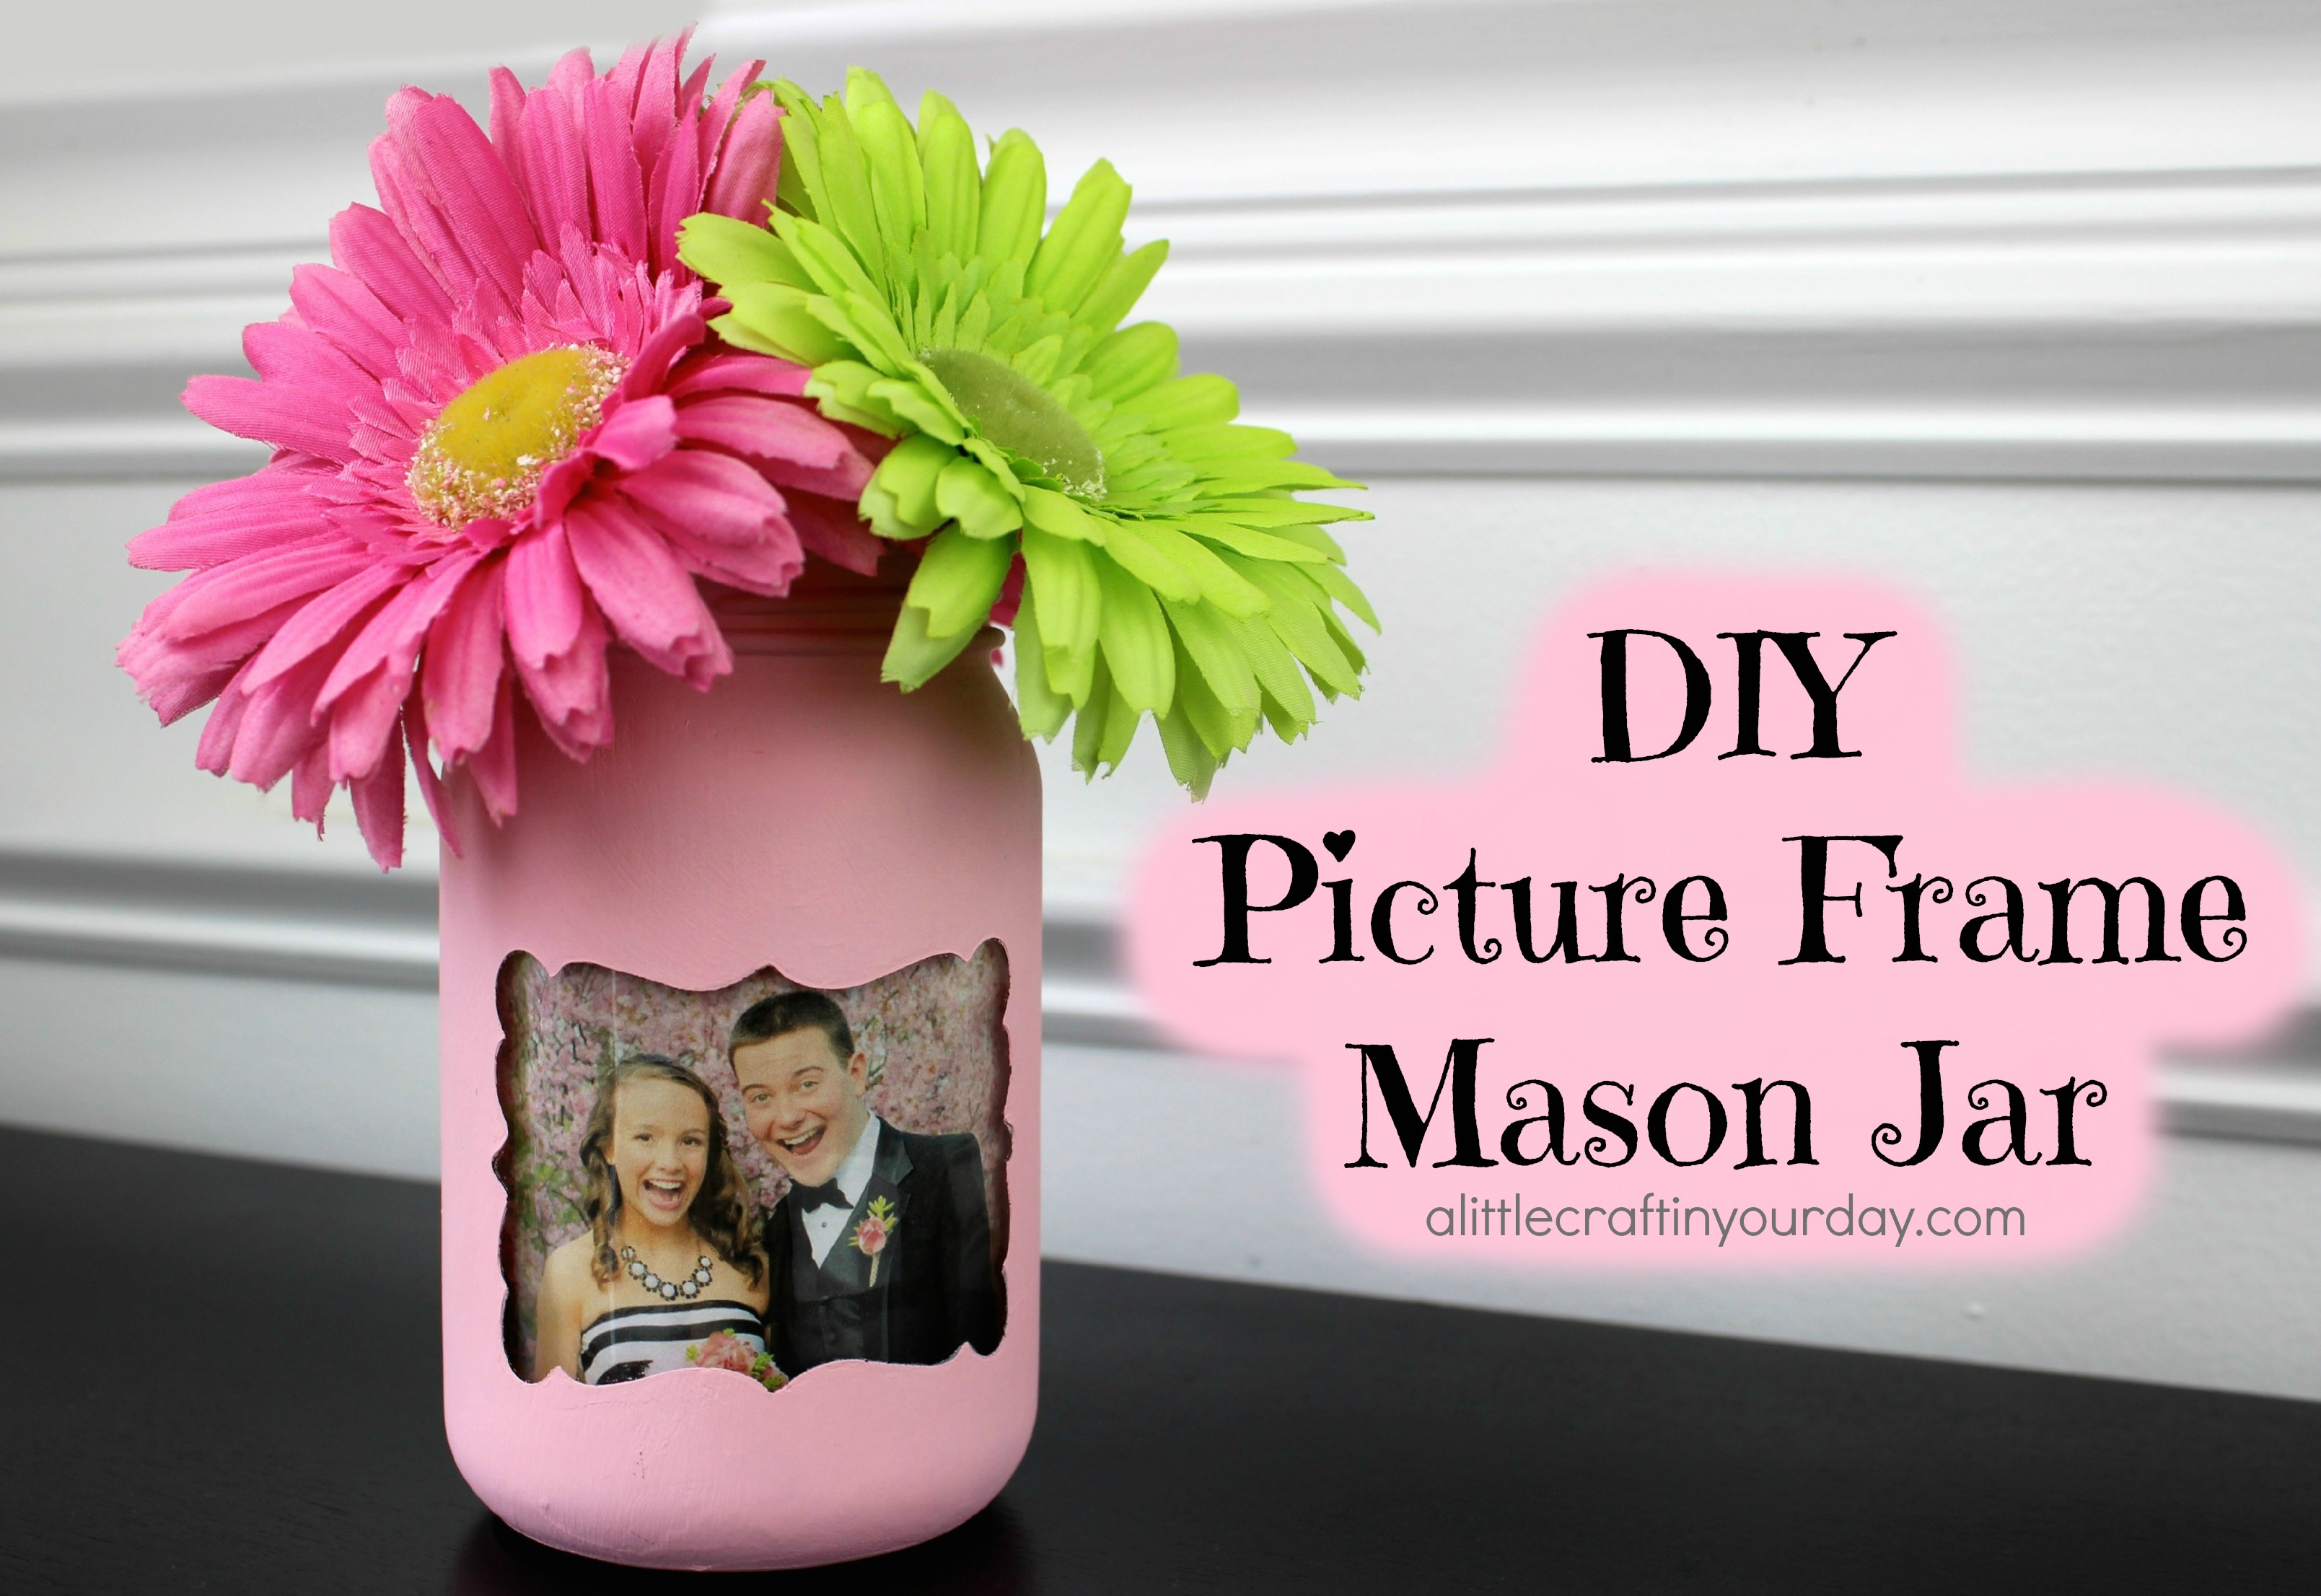 Diy picture frame mason jar a little craft in your day click here to check out these great mason jars perfect for this project jeuxipadfo Choice Image